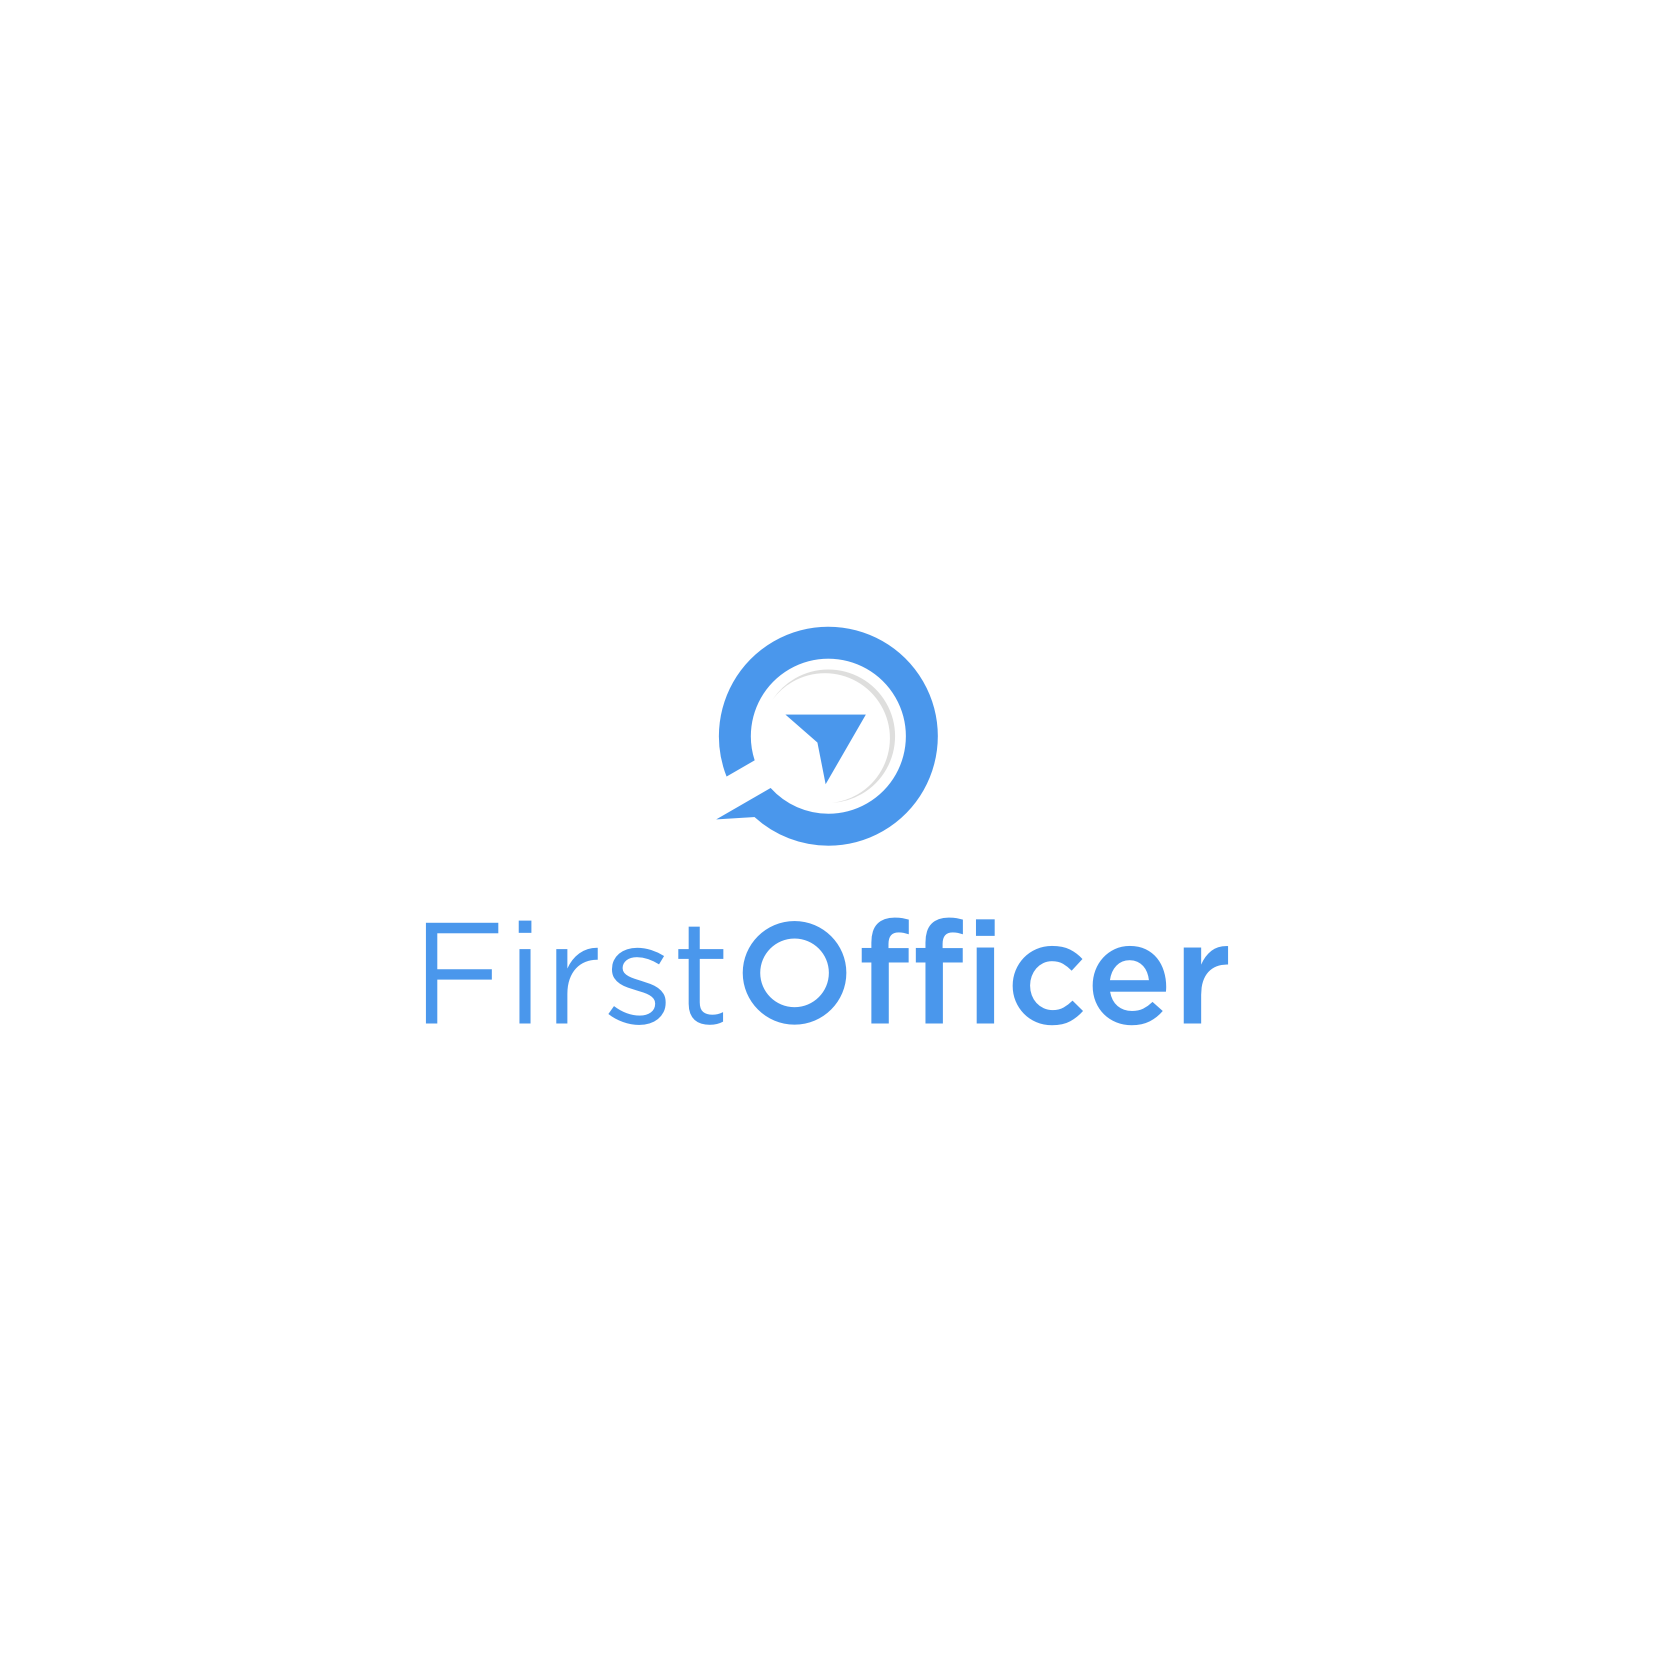 FirstOfficer.io Help Center home page